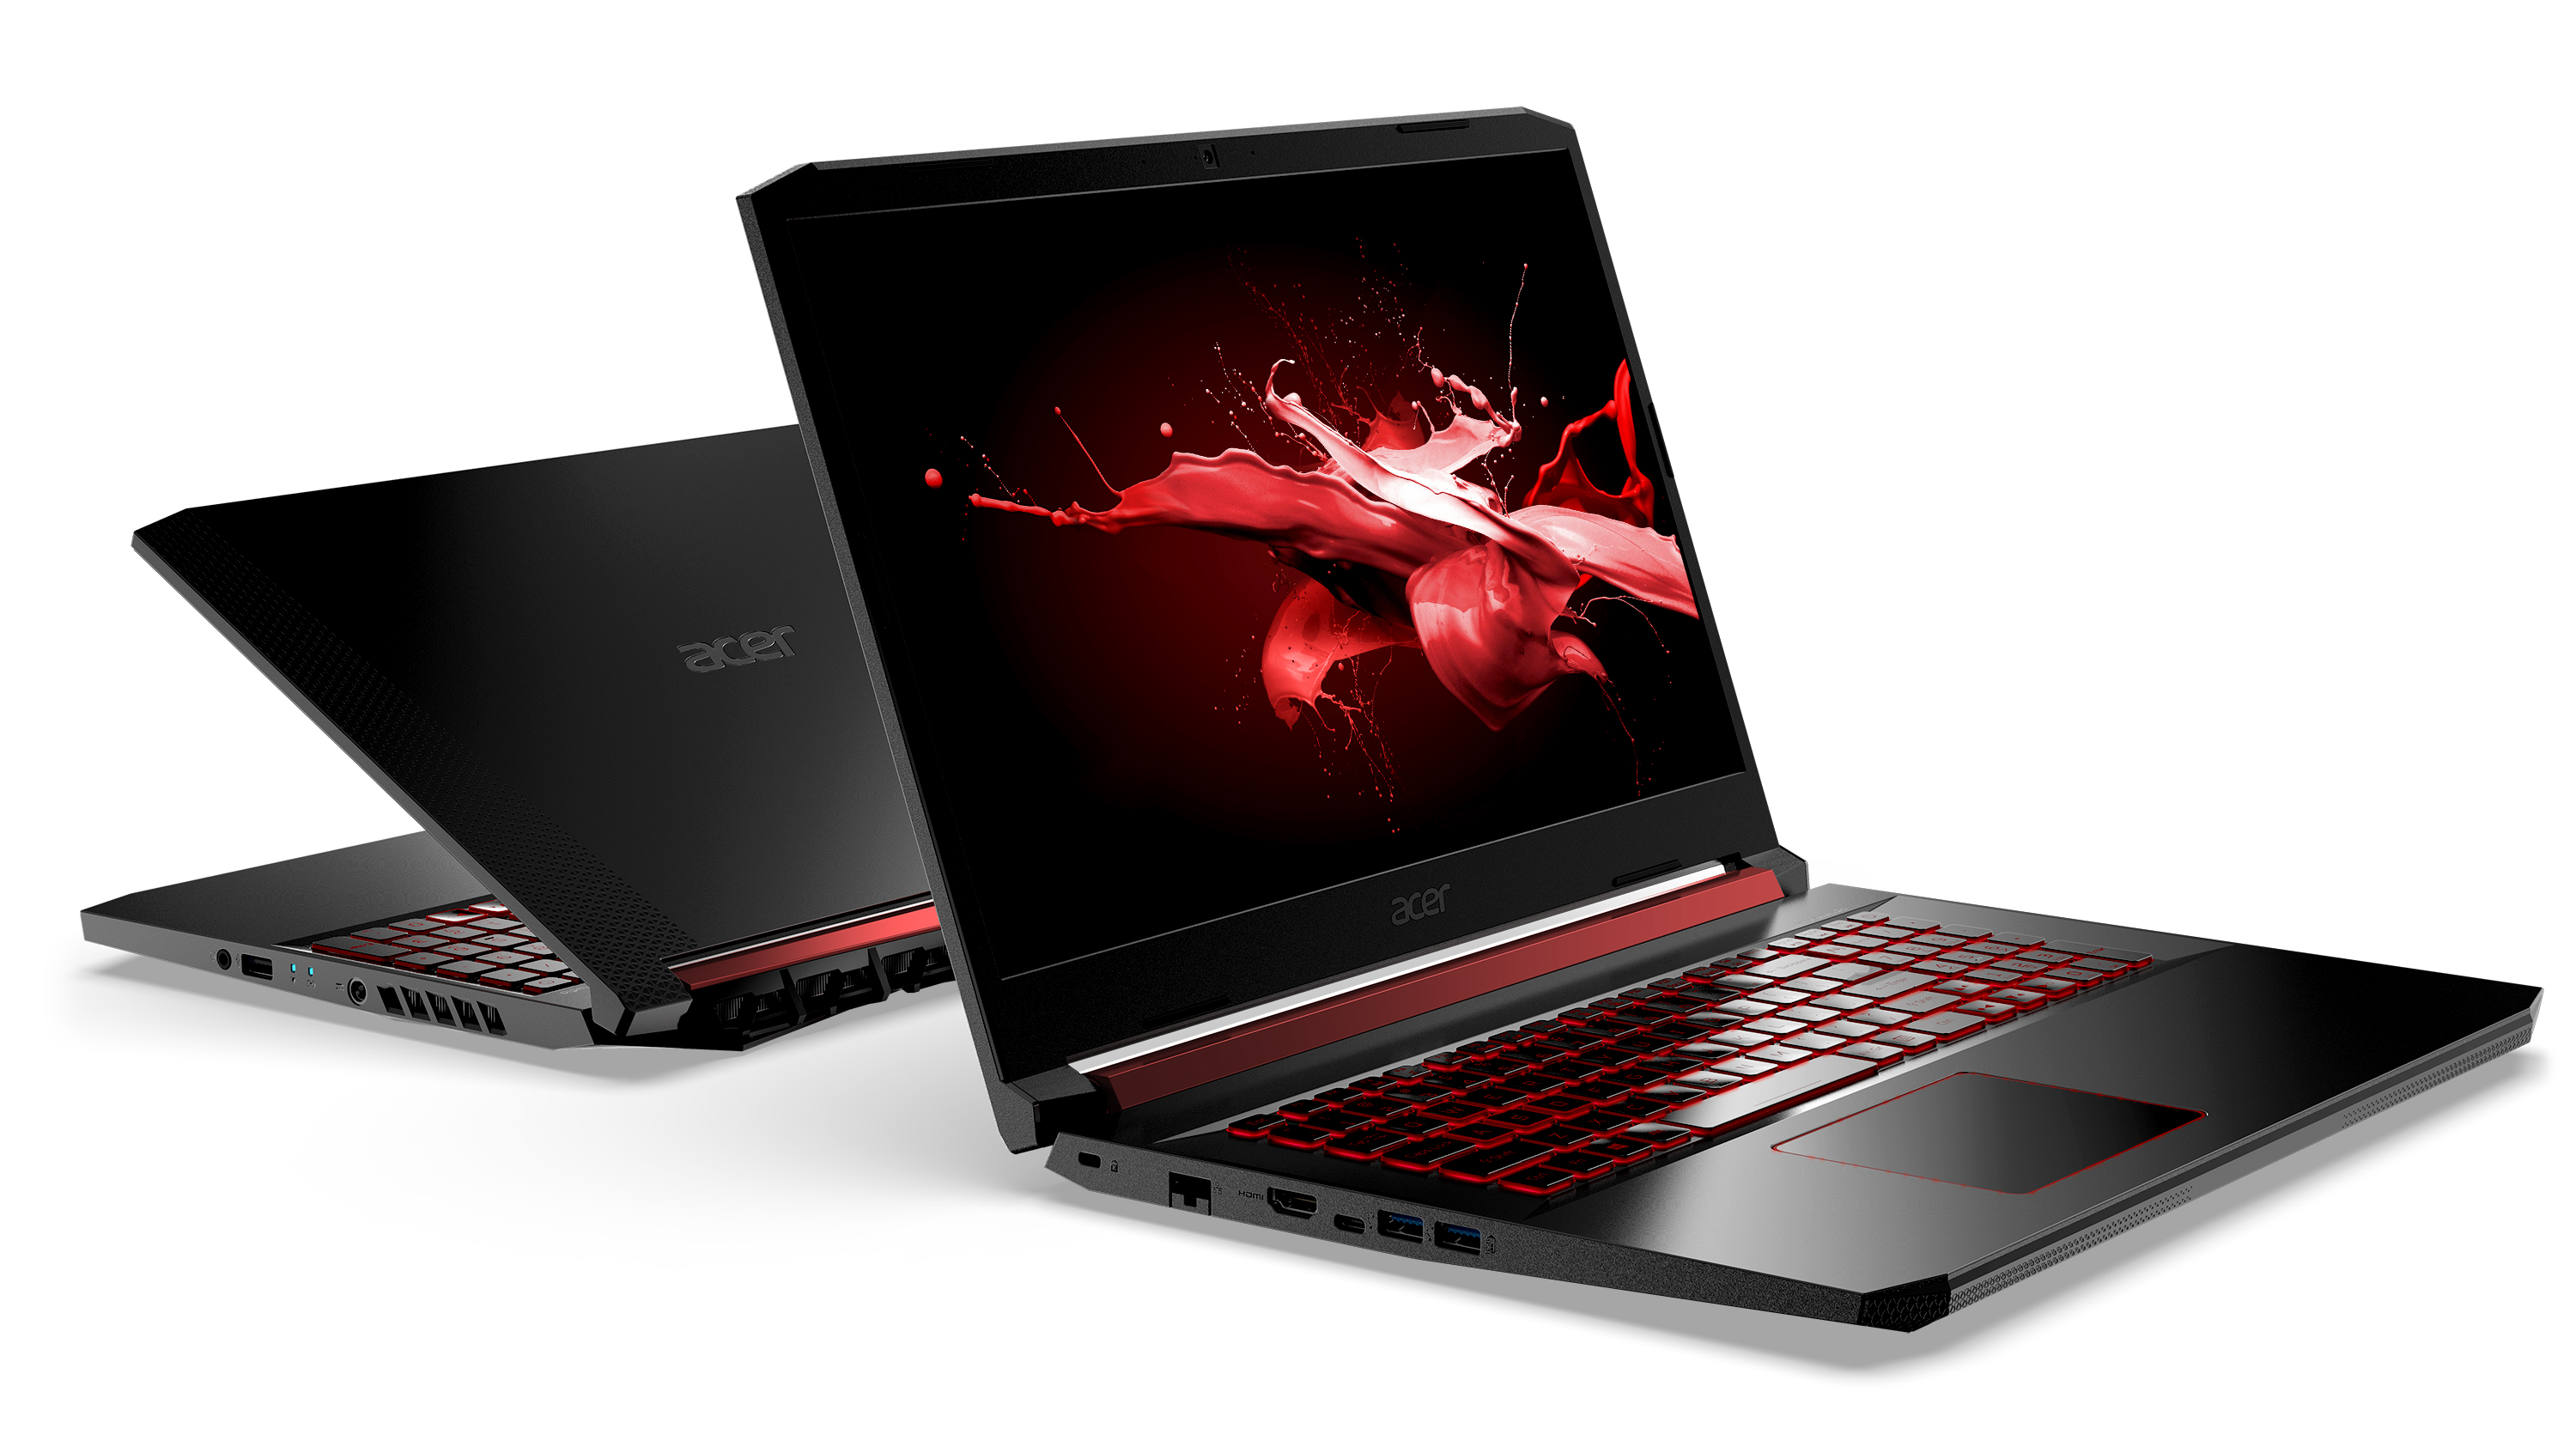 Image result for Acer Nitro 5 9th Gen Core i7 Gaming Laptop